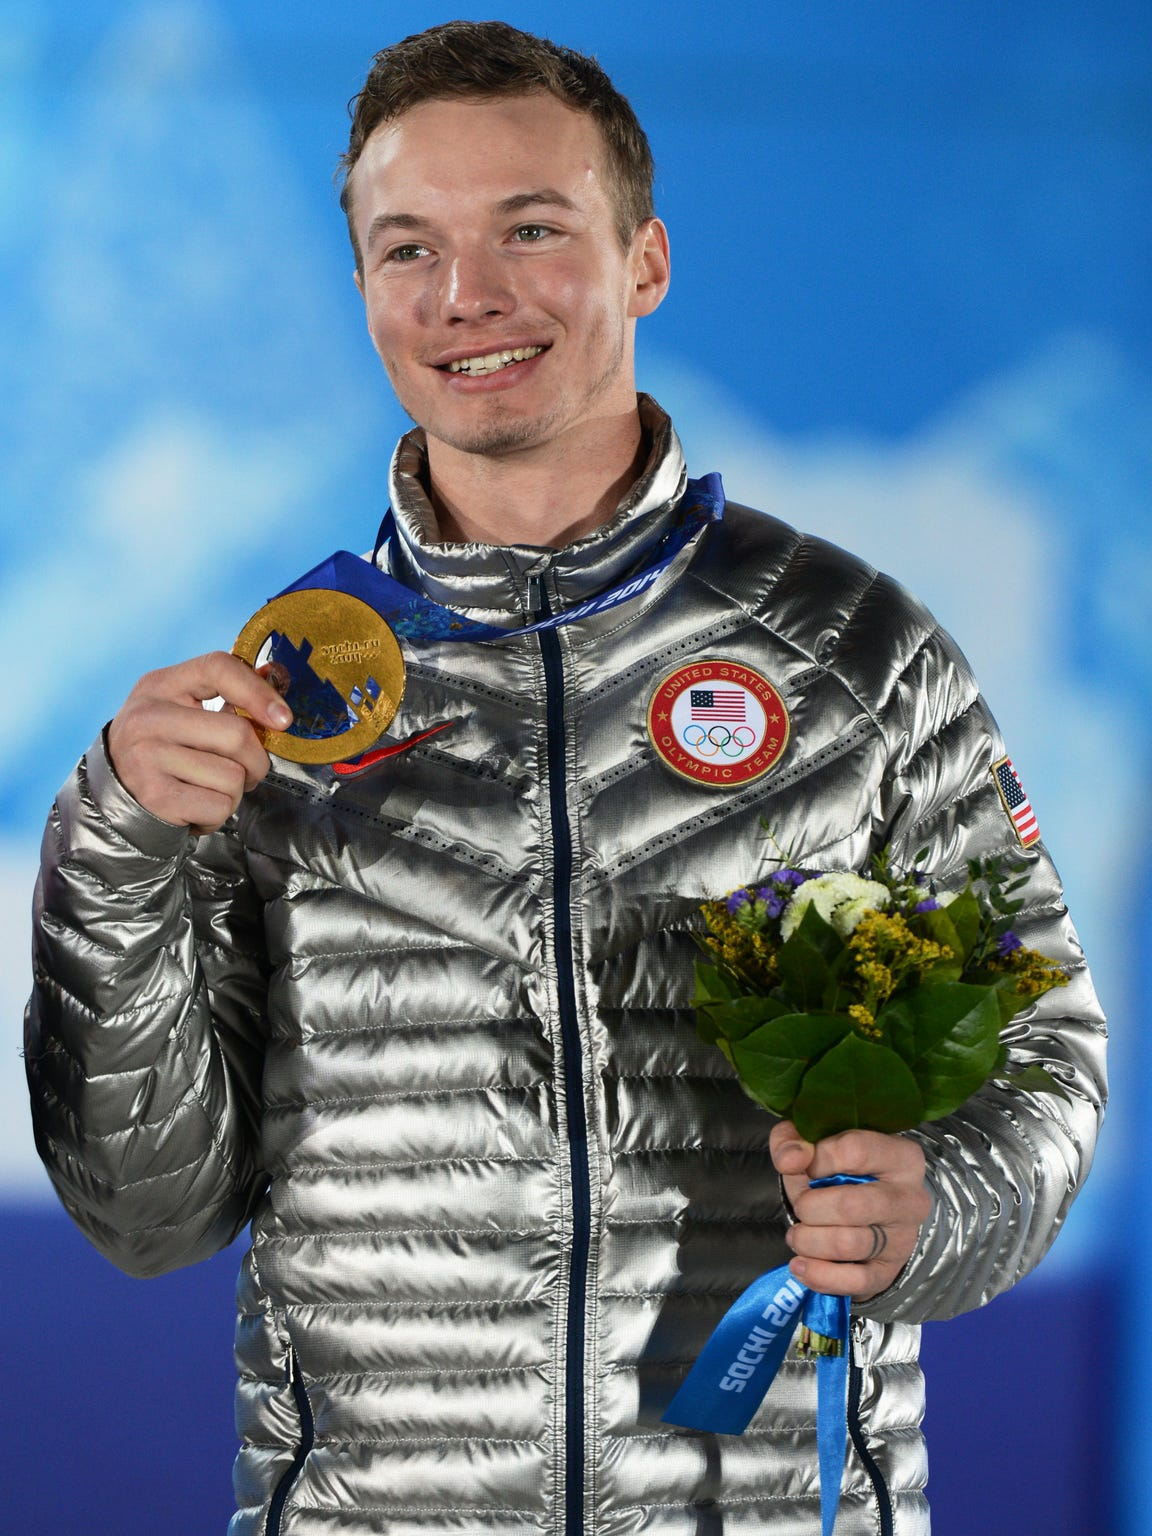 Reno's David Wise won a gold medal at the 2014 Sochi